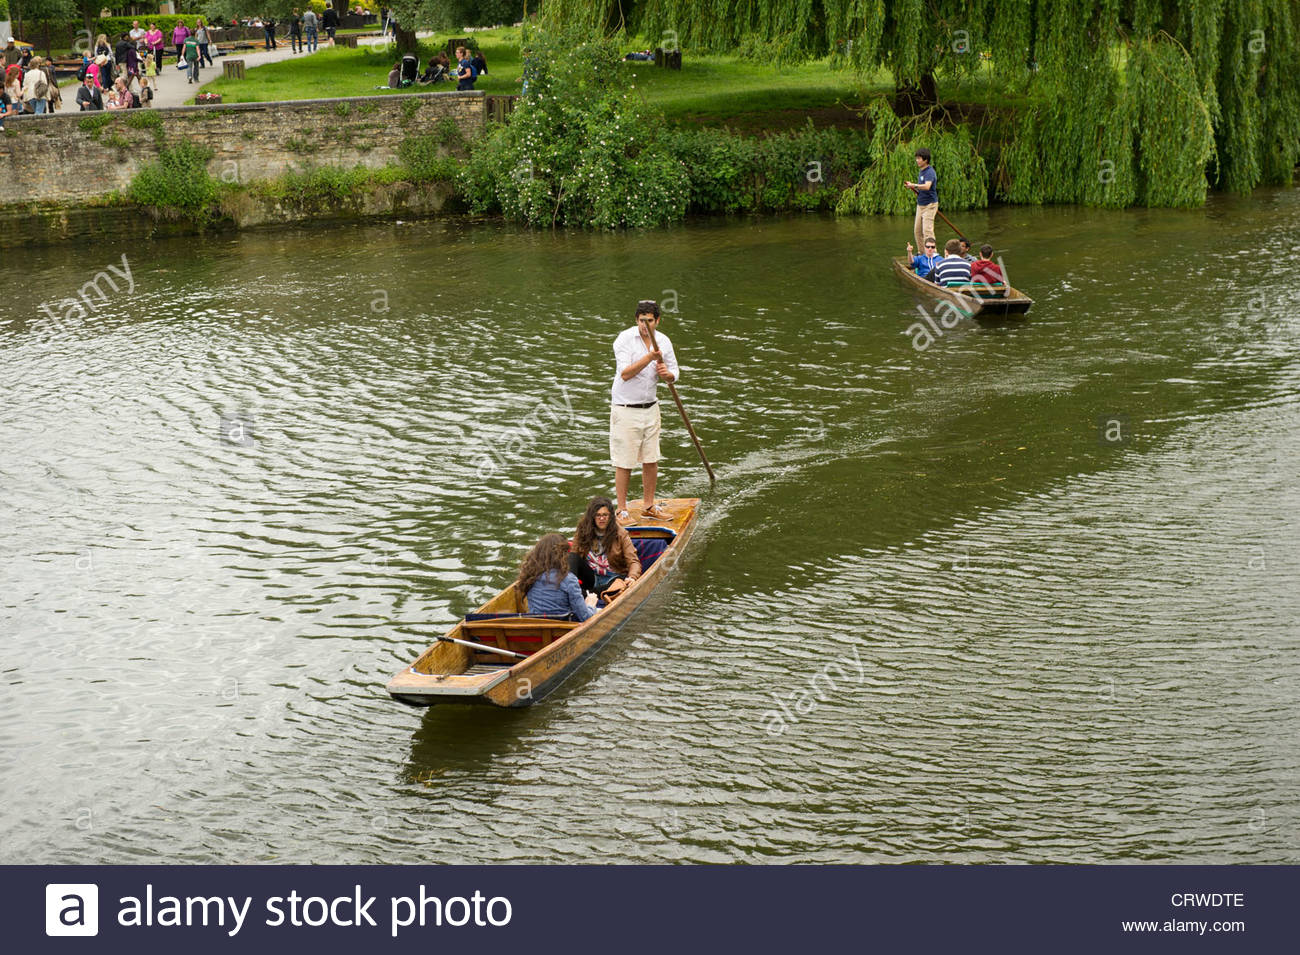 Punts on the river at Cambridge. - Stock Image